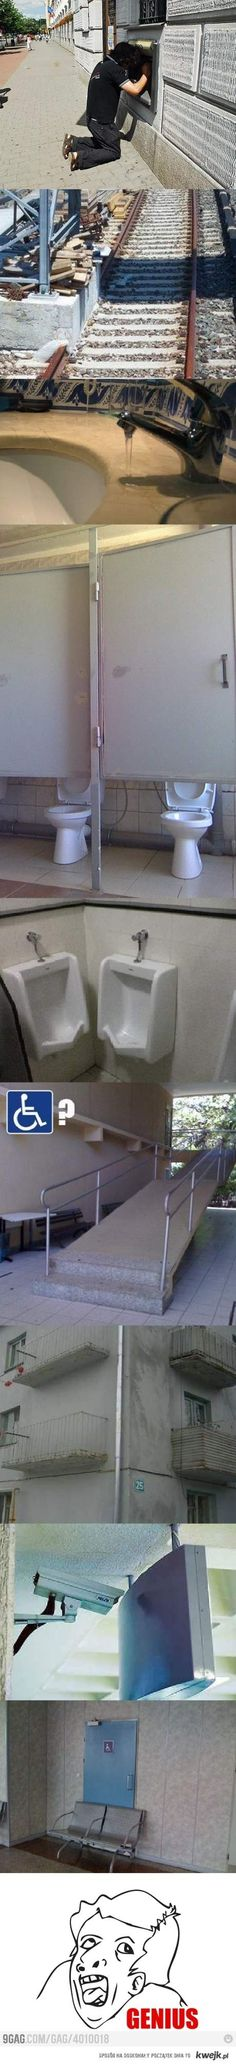 you had one job and thats the best you can do?!?!?!?!? i mean come on mann!!! :P